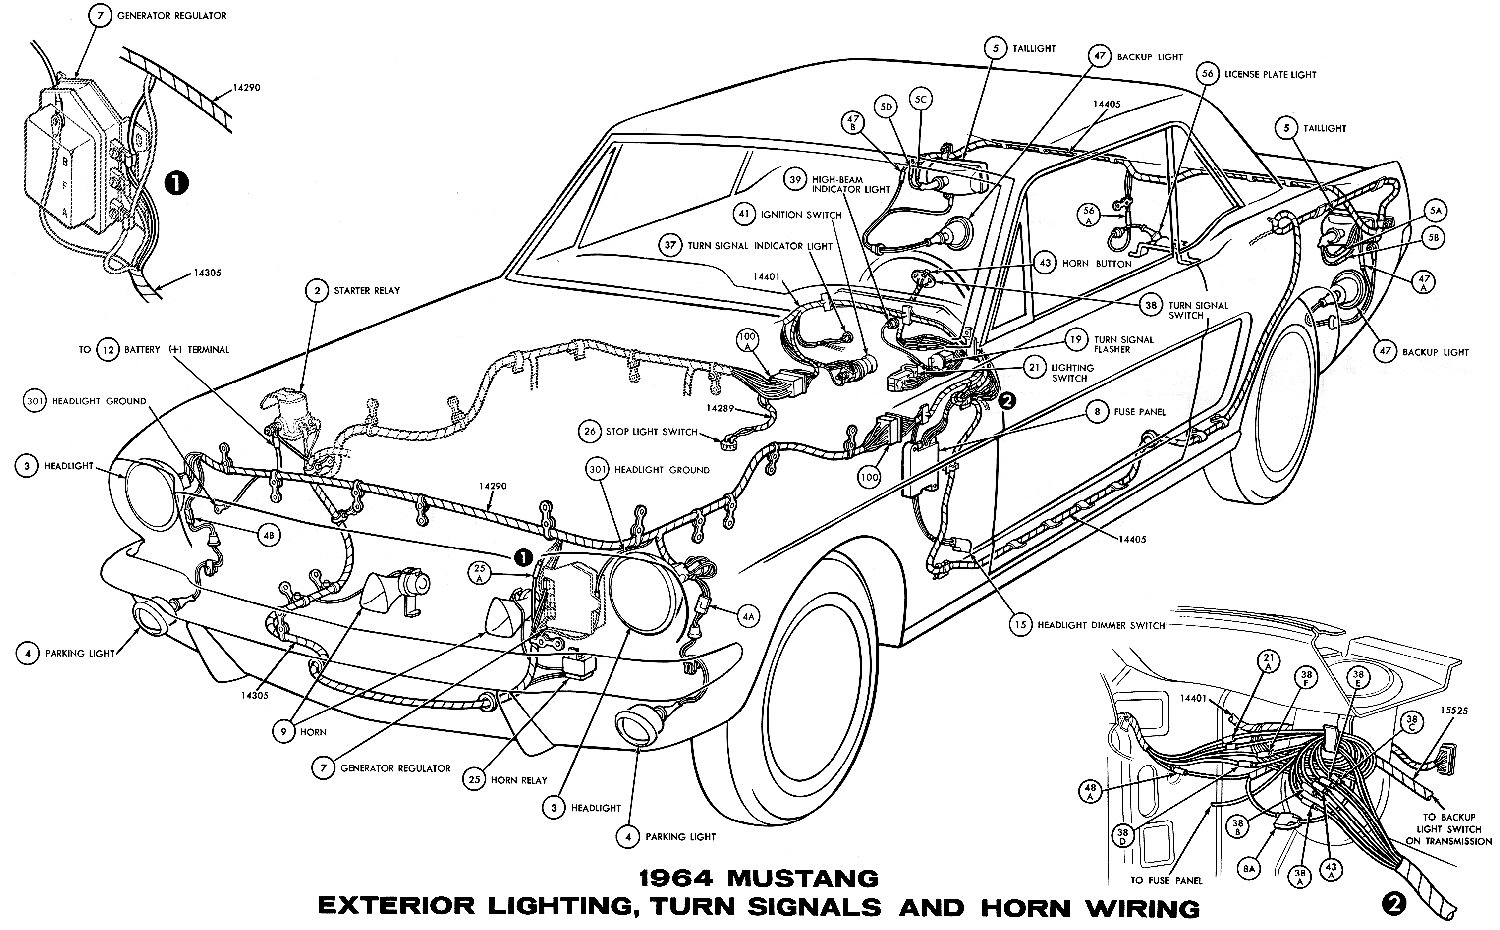 1964 Mustang Wiring Diagrams Average Joe Restoration 1968 Transmission Selector Diagram Sm1964h Exterior Lighting Turn Signals And Horns Pictorial Or Schematic